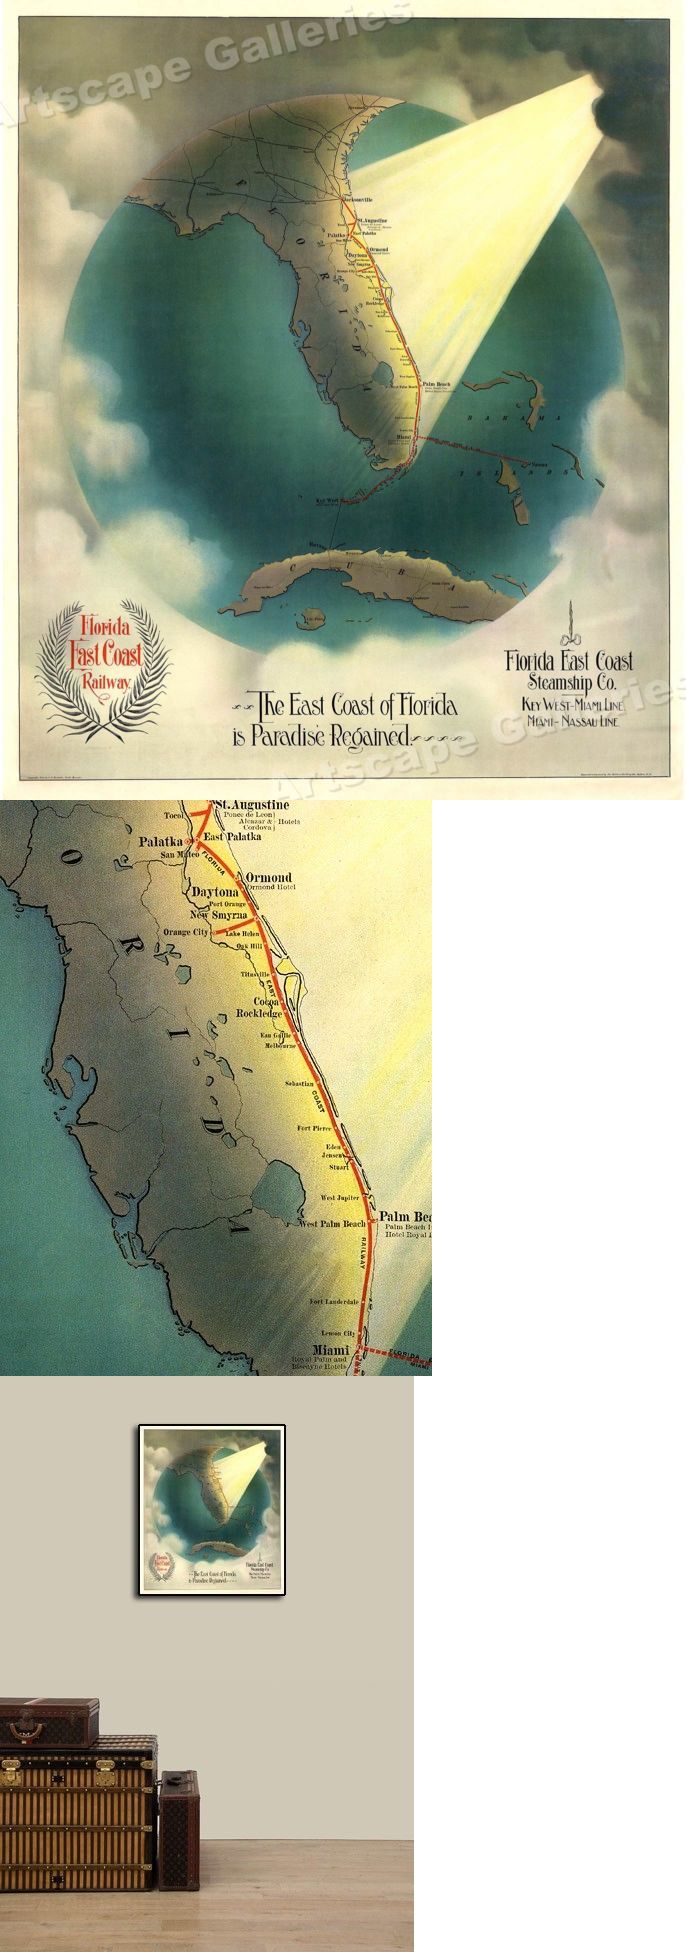 Map Of East Coast Of Florida.Maps Atlases And Globes 37958 1880s Florida East Coast Steamship Co